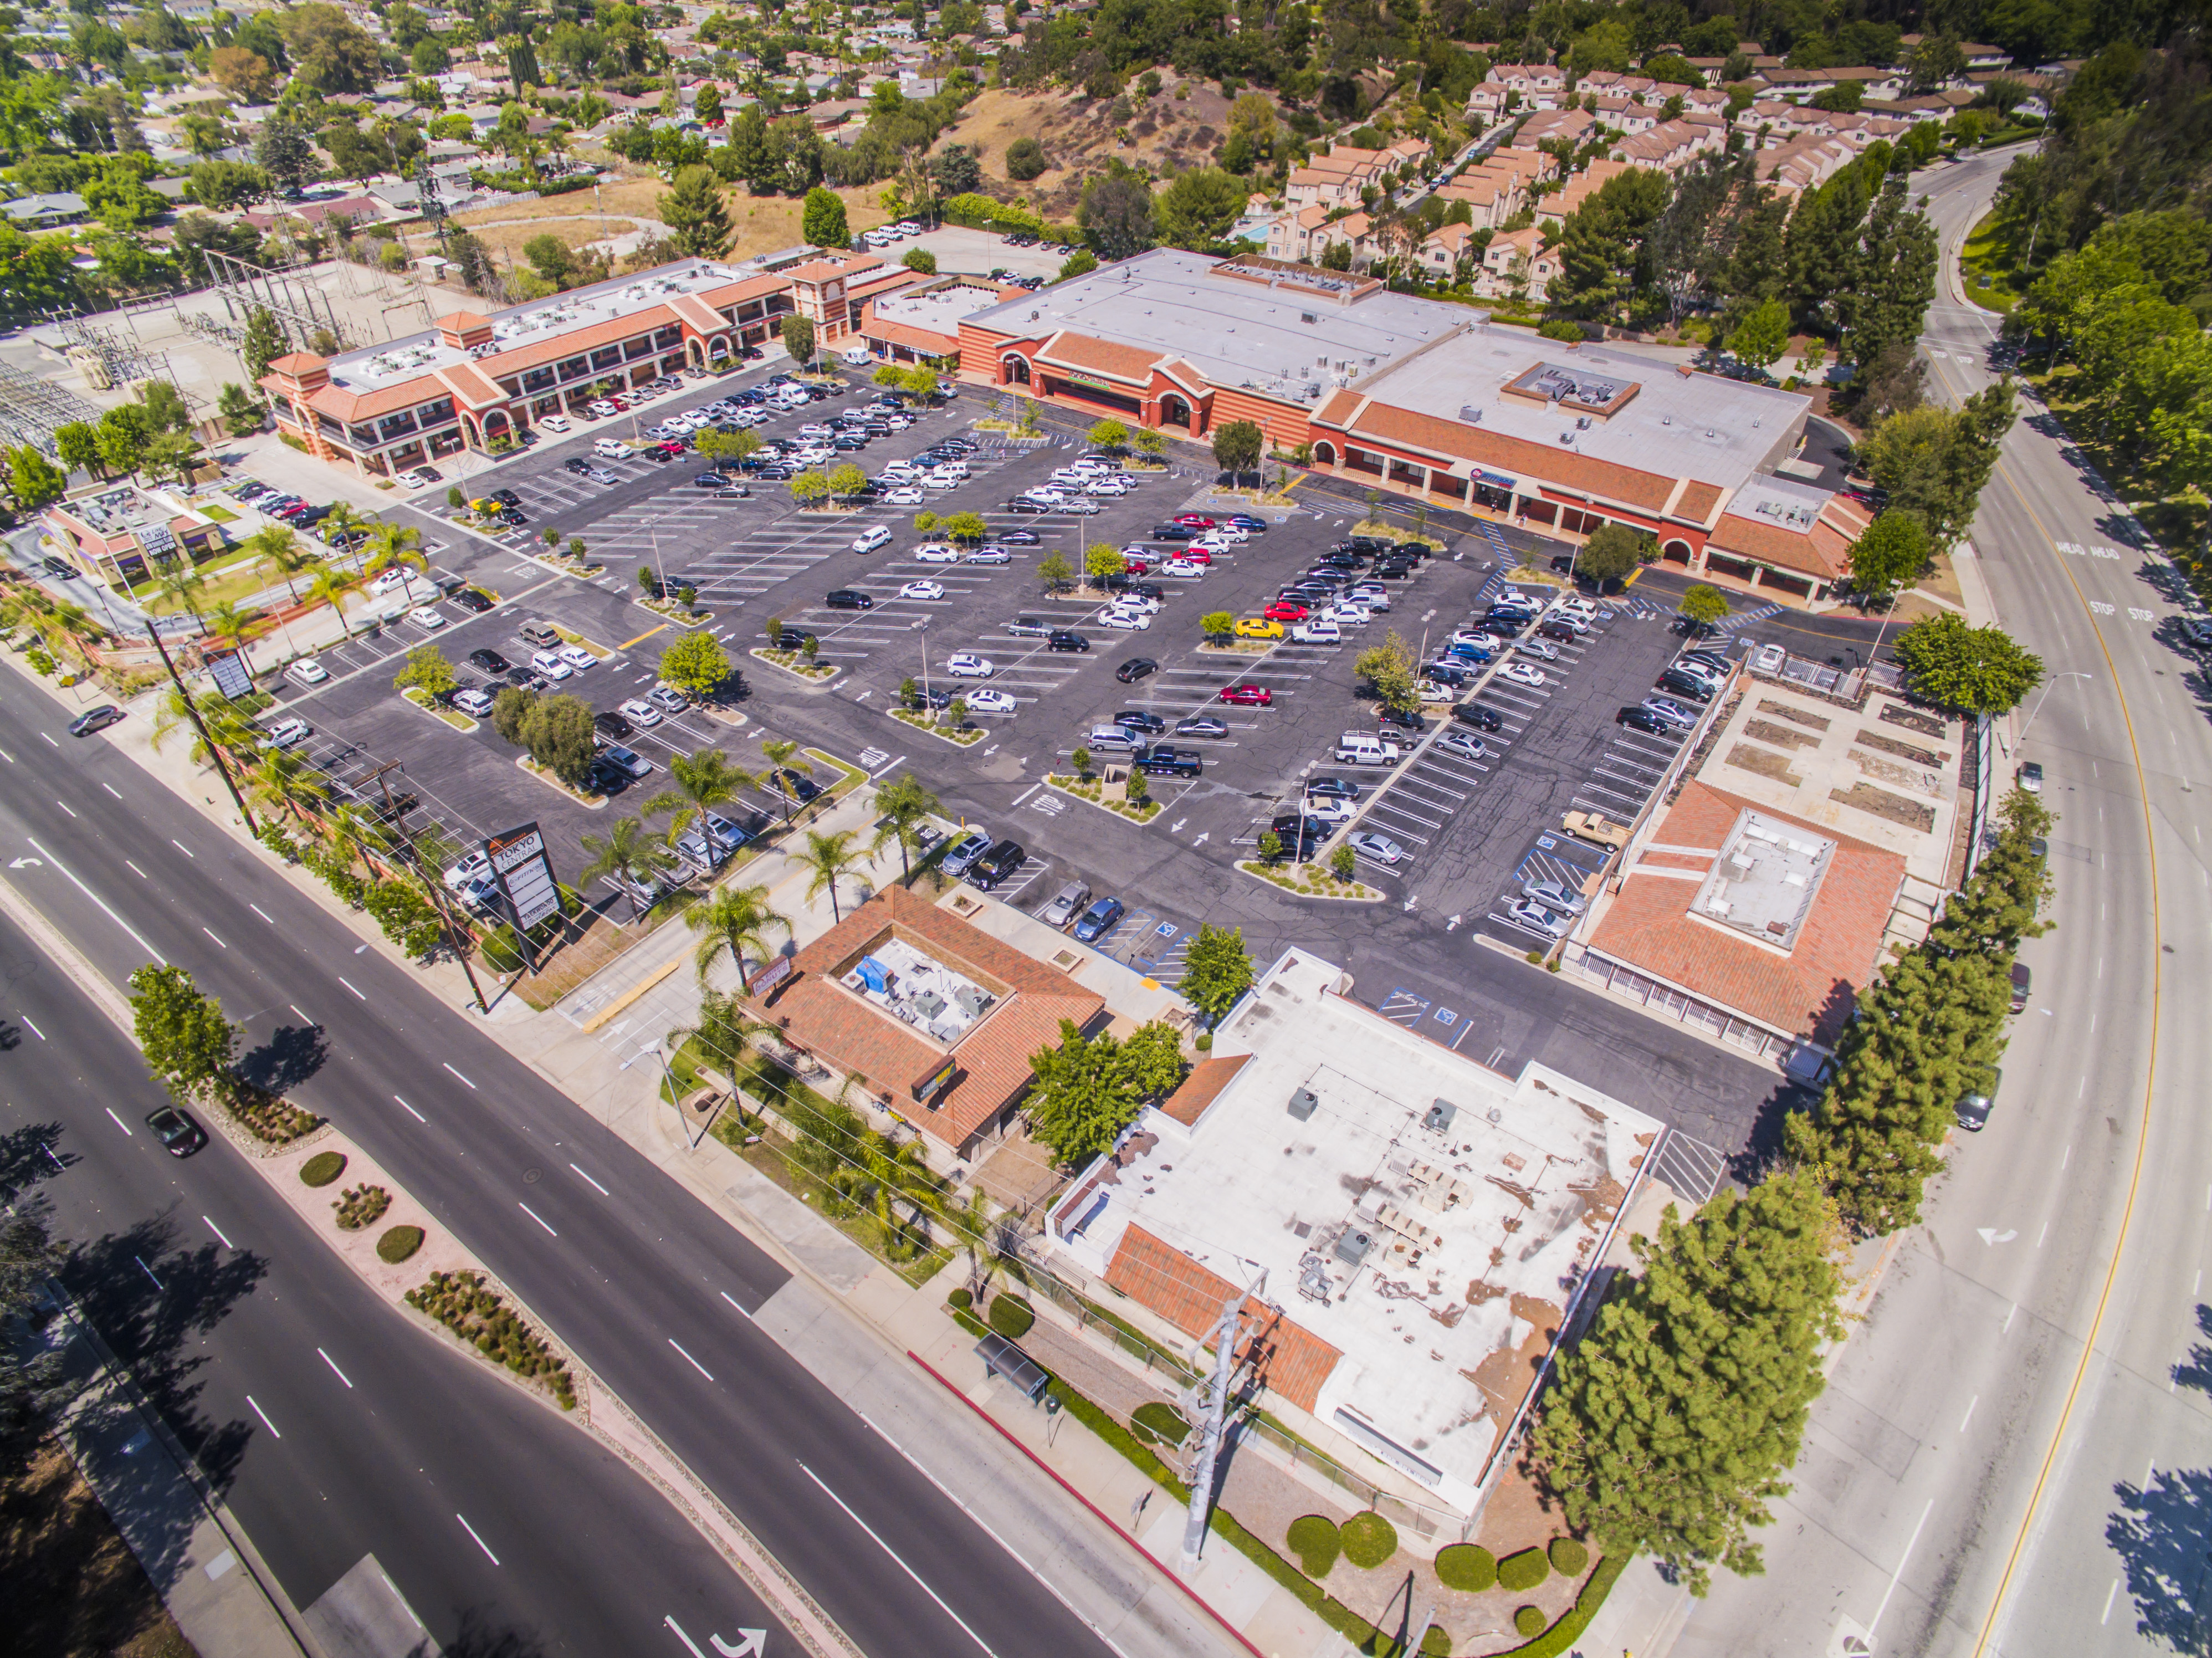 South Hills Plaza aerial